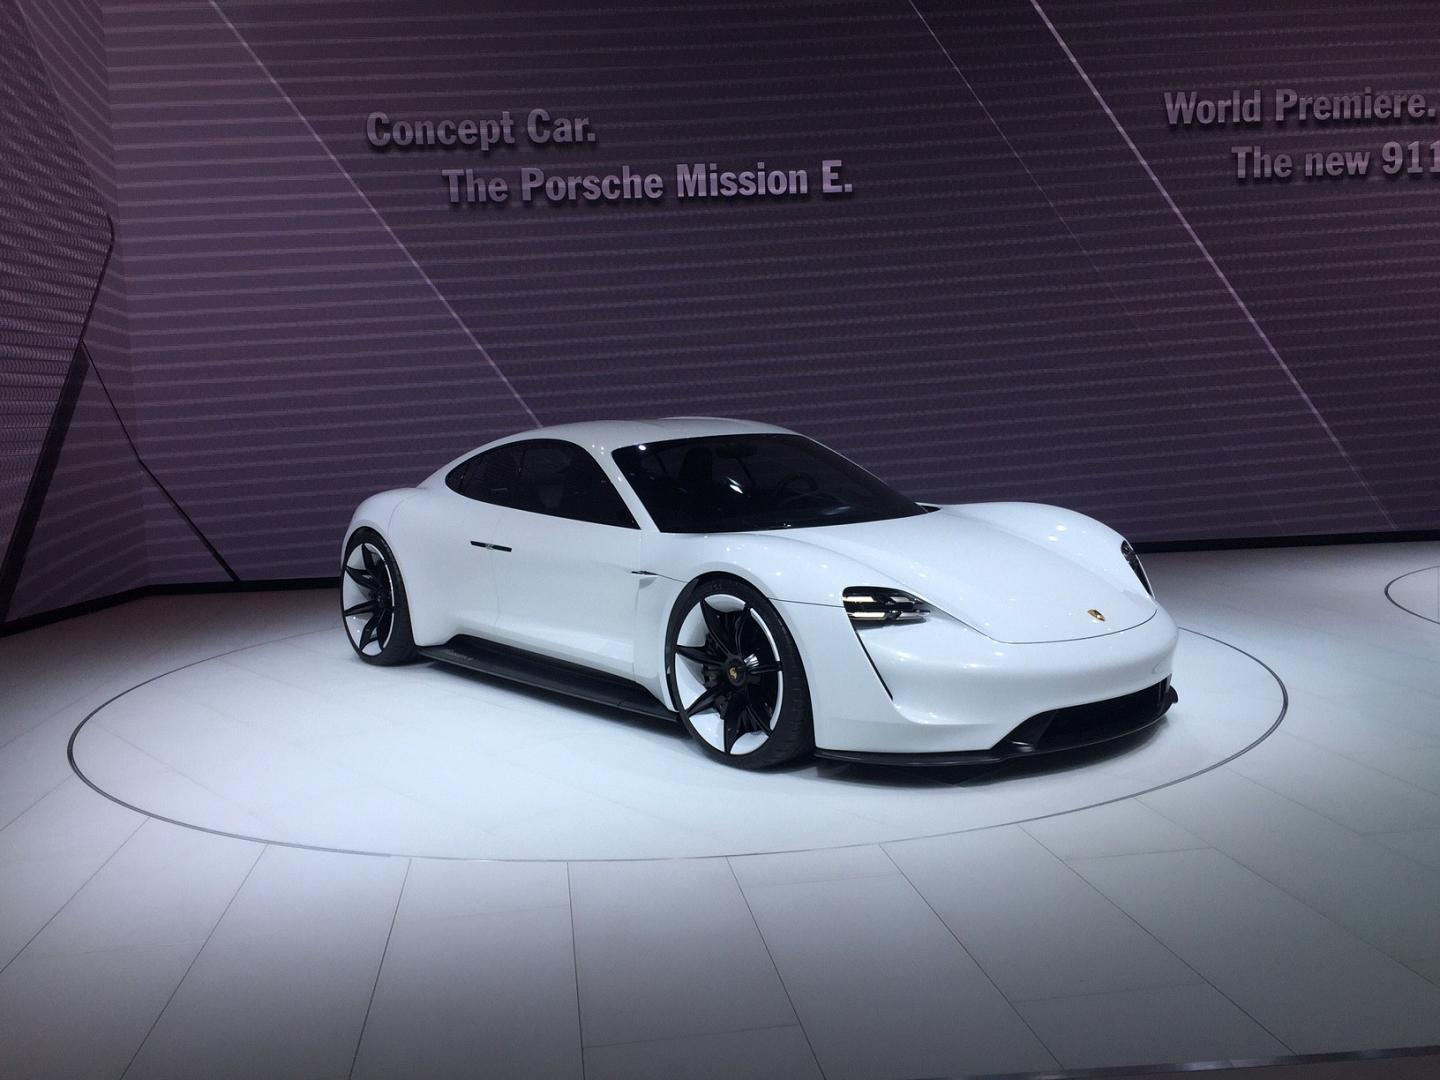 IAA 2015 - Porsche Mission E Concept Car